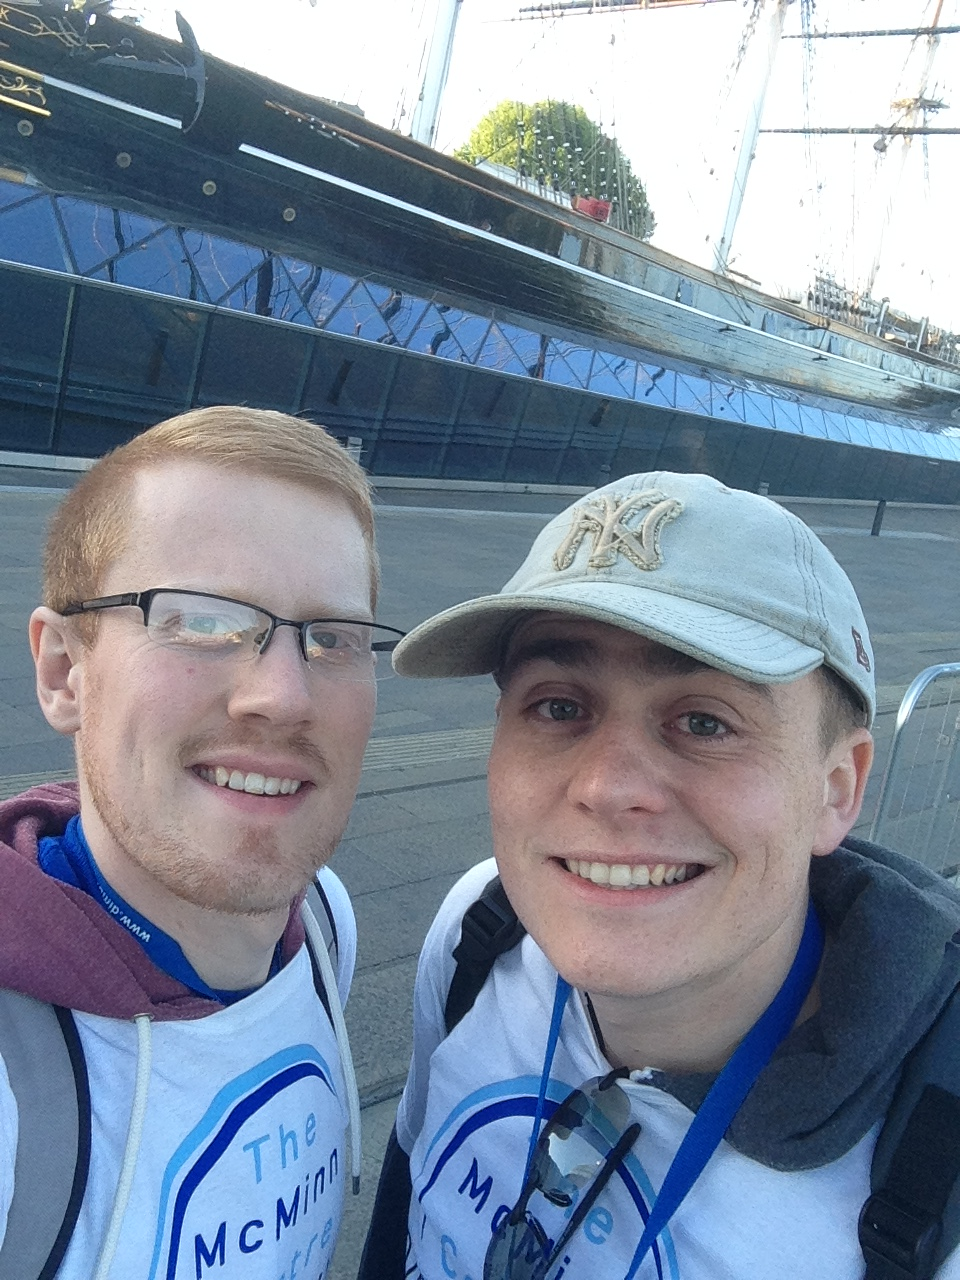 Rob and Chris at The Cutty Sark